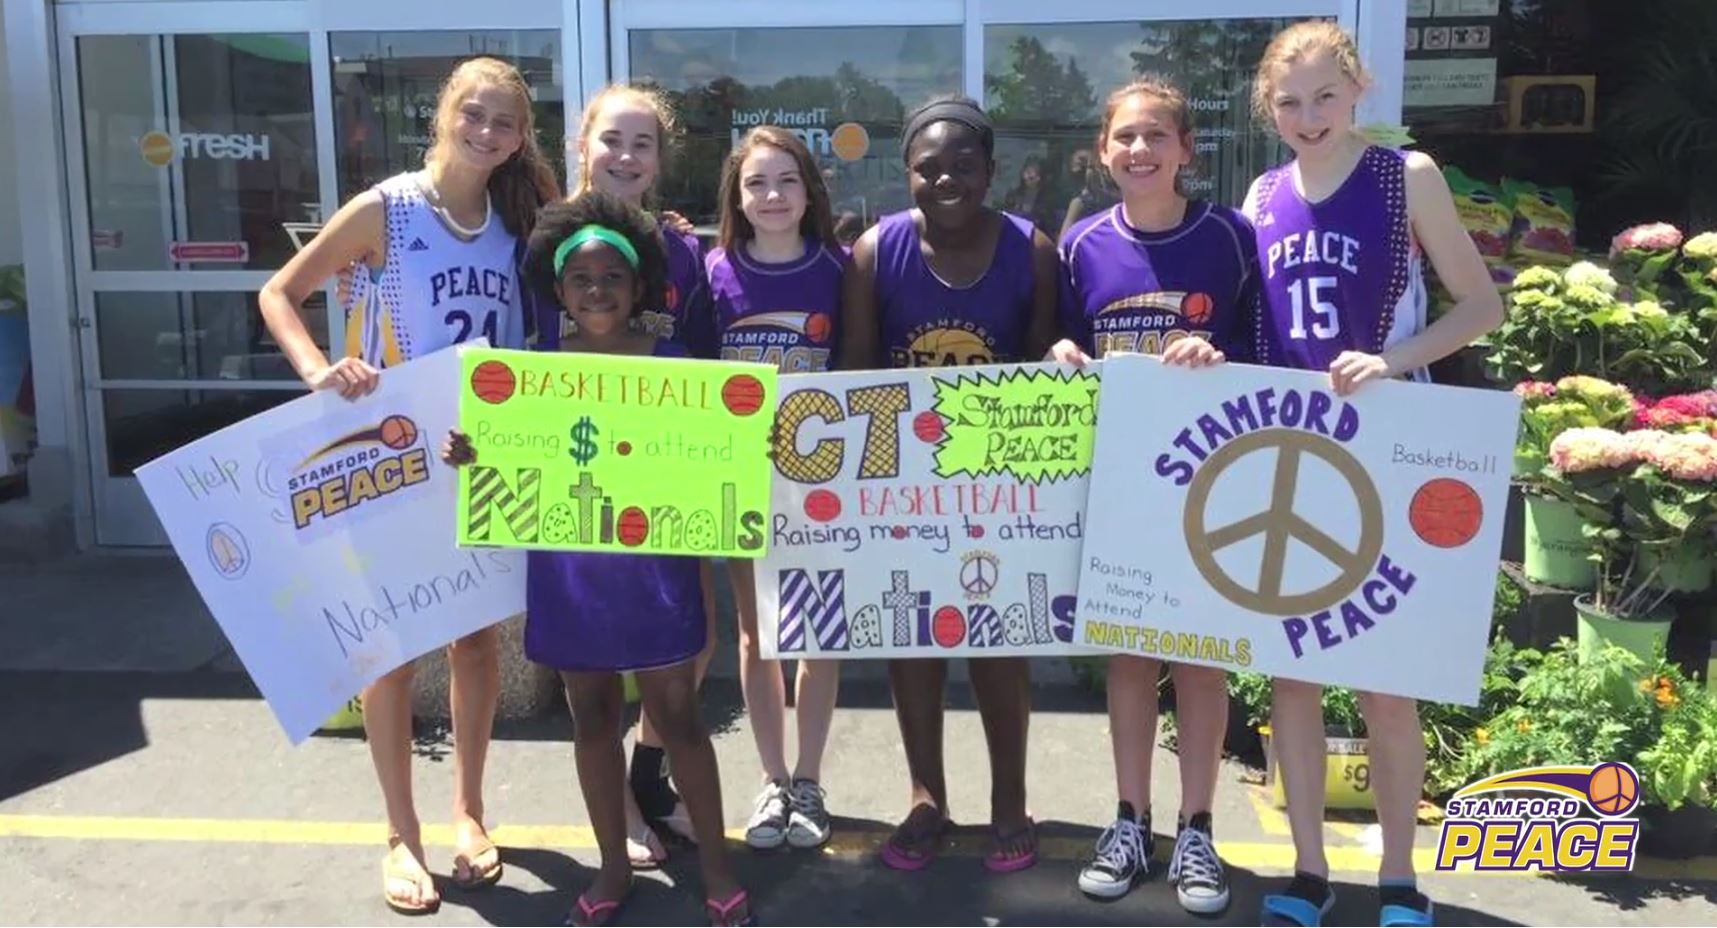 Image: Girls on the Stamford Basketball team standing with smiles and inspiring posters.